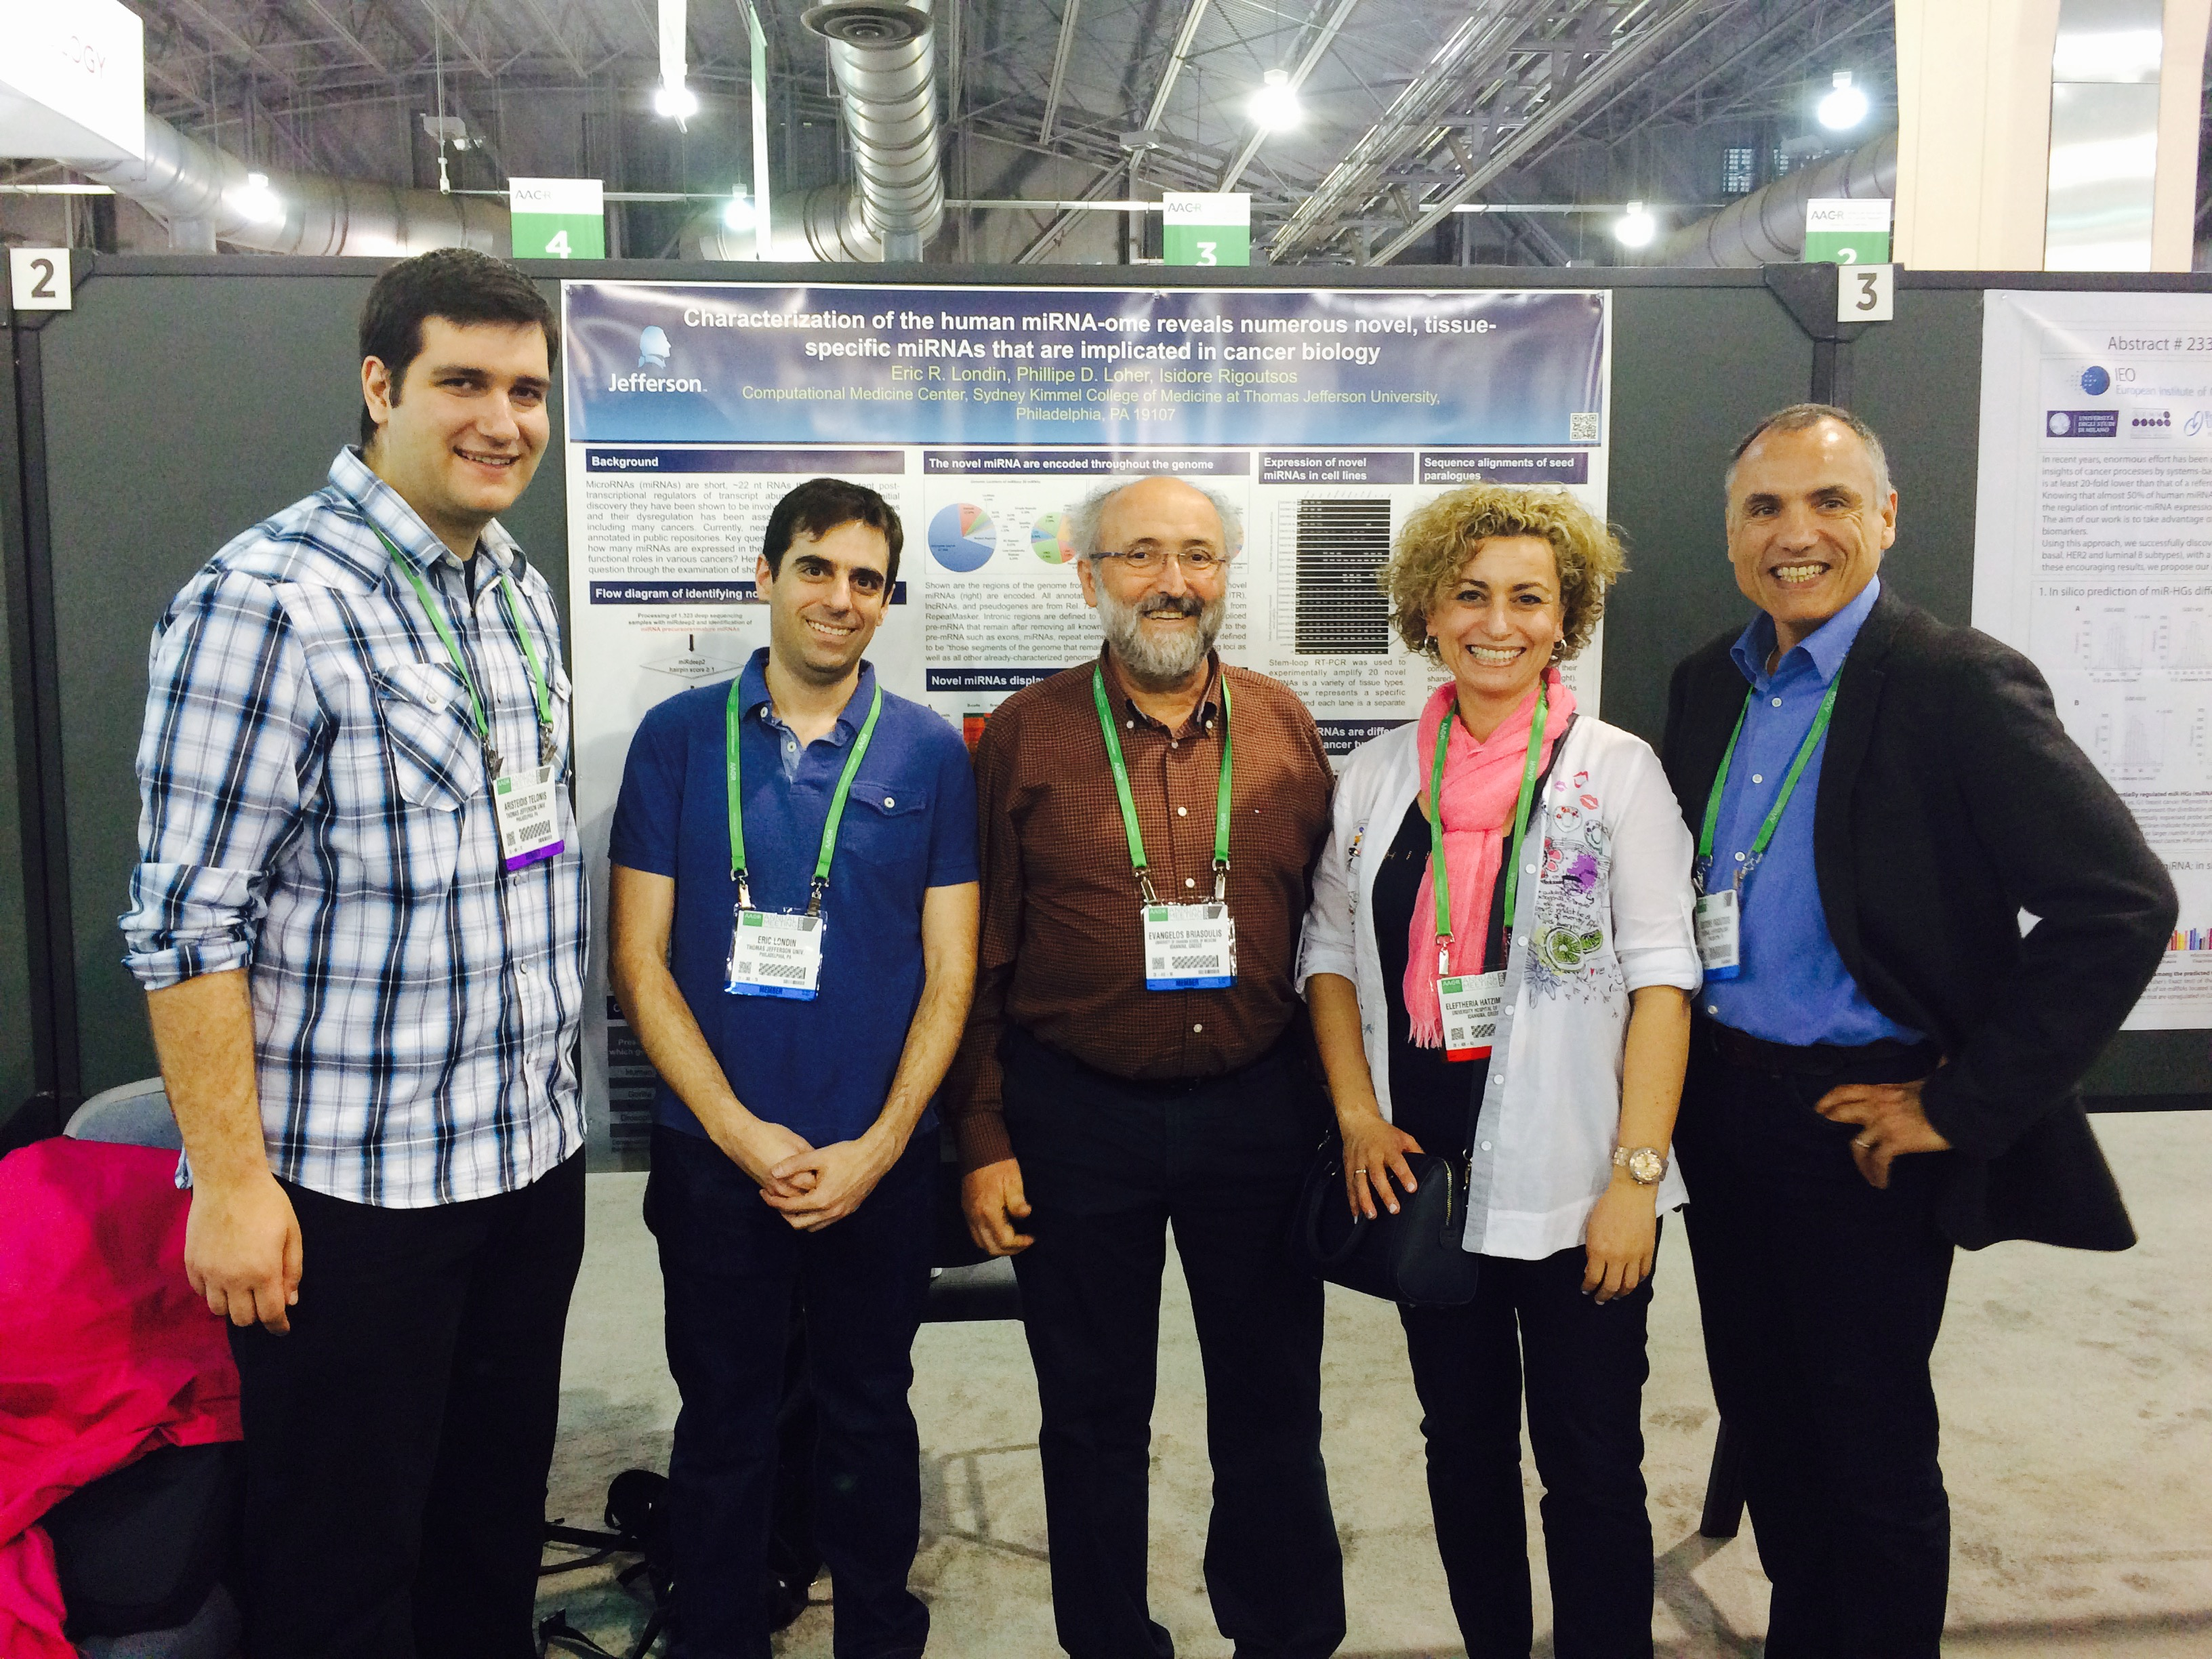 AACR, Apr 2015